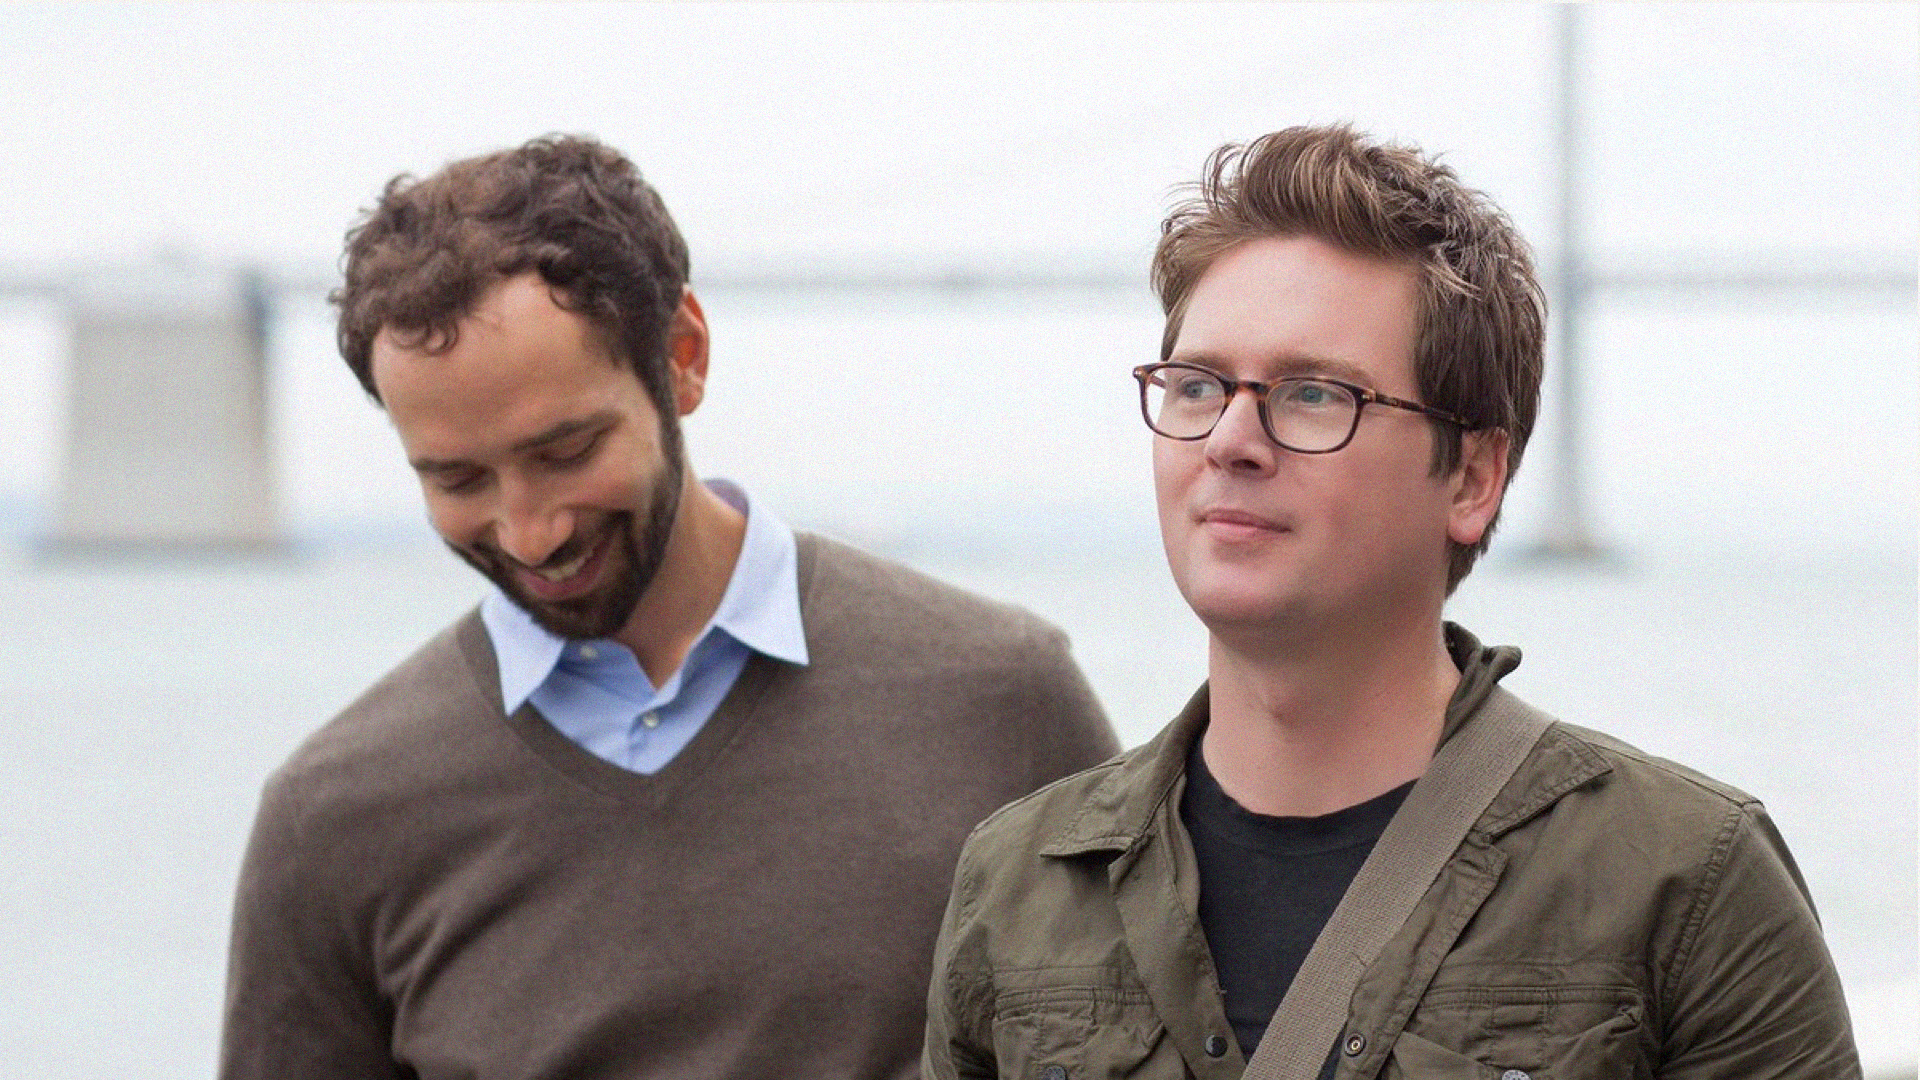 Ben Finkel, left, and Biz Stone